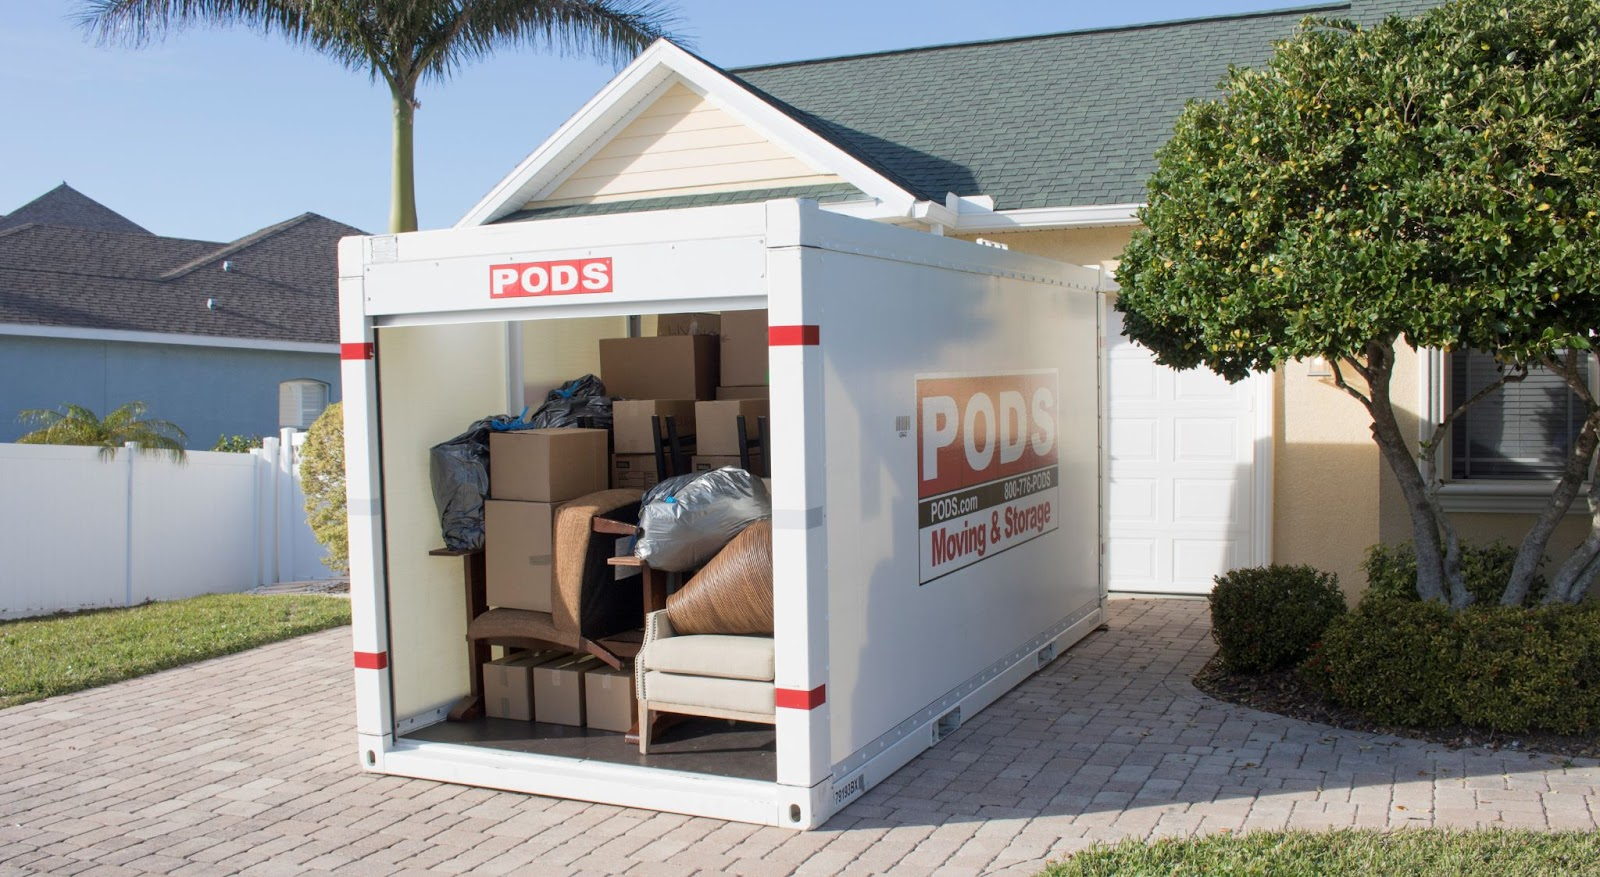 a PODS portable storage container loaded with boxes and furniture